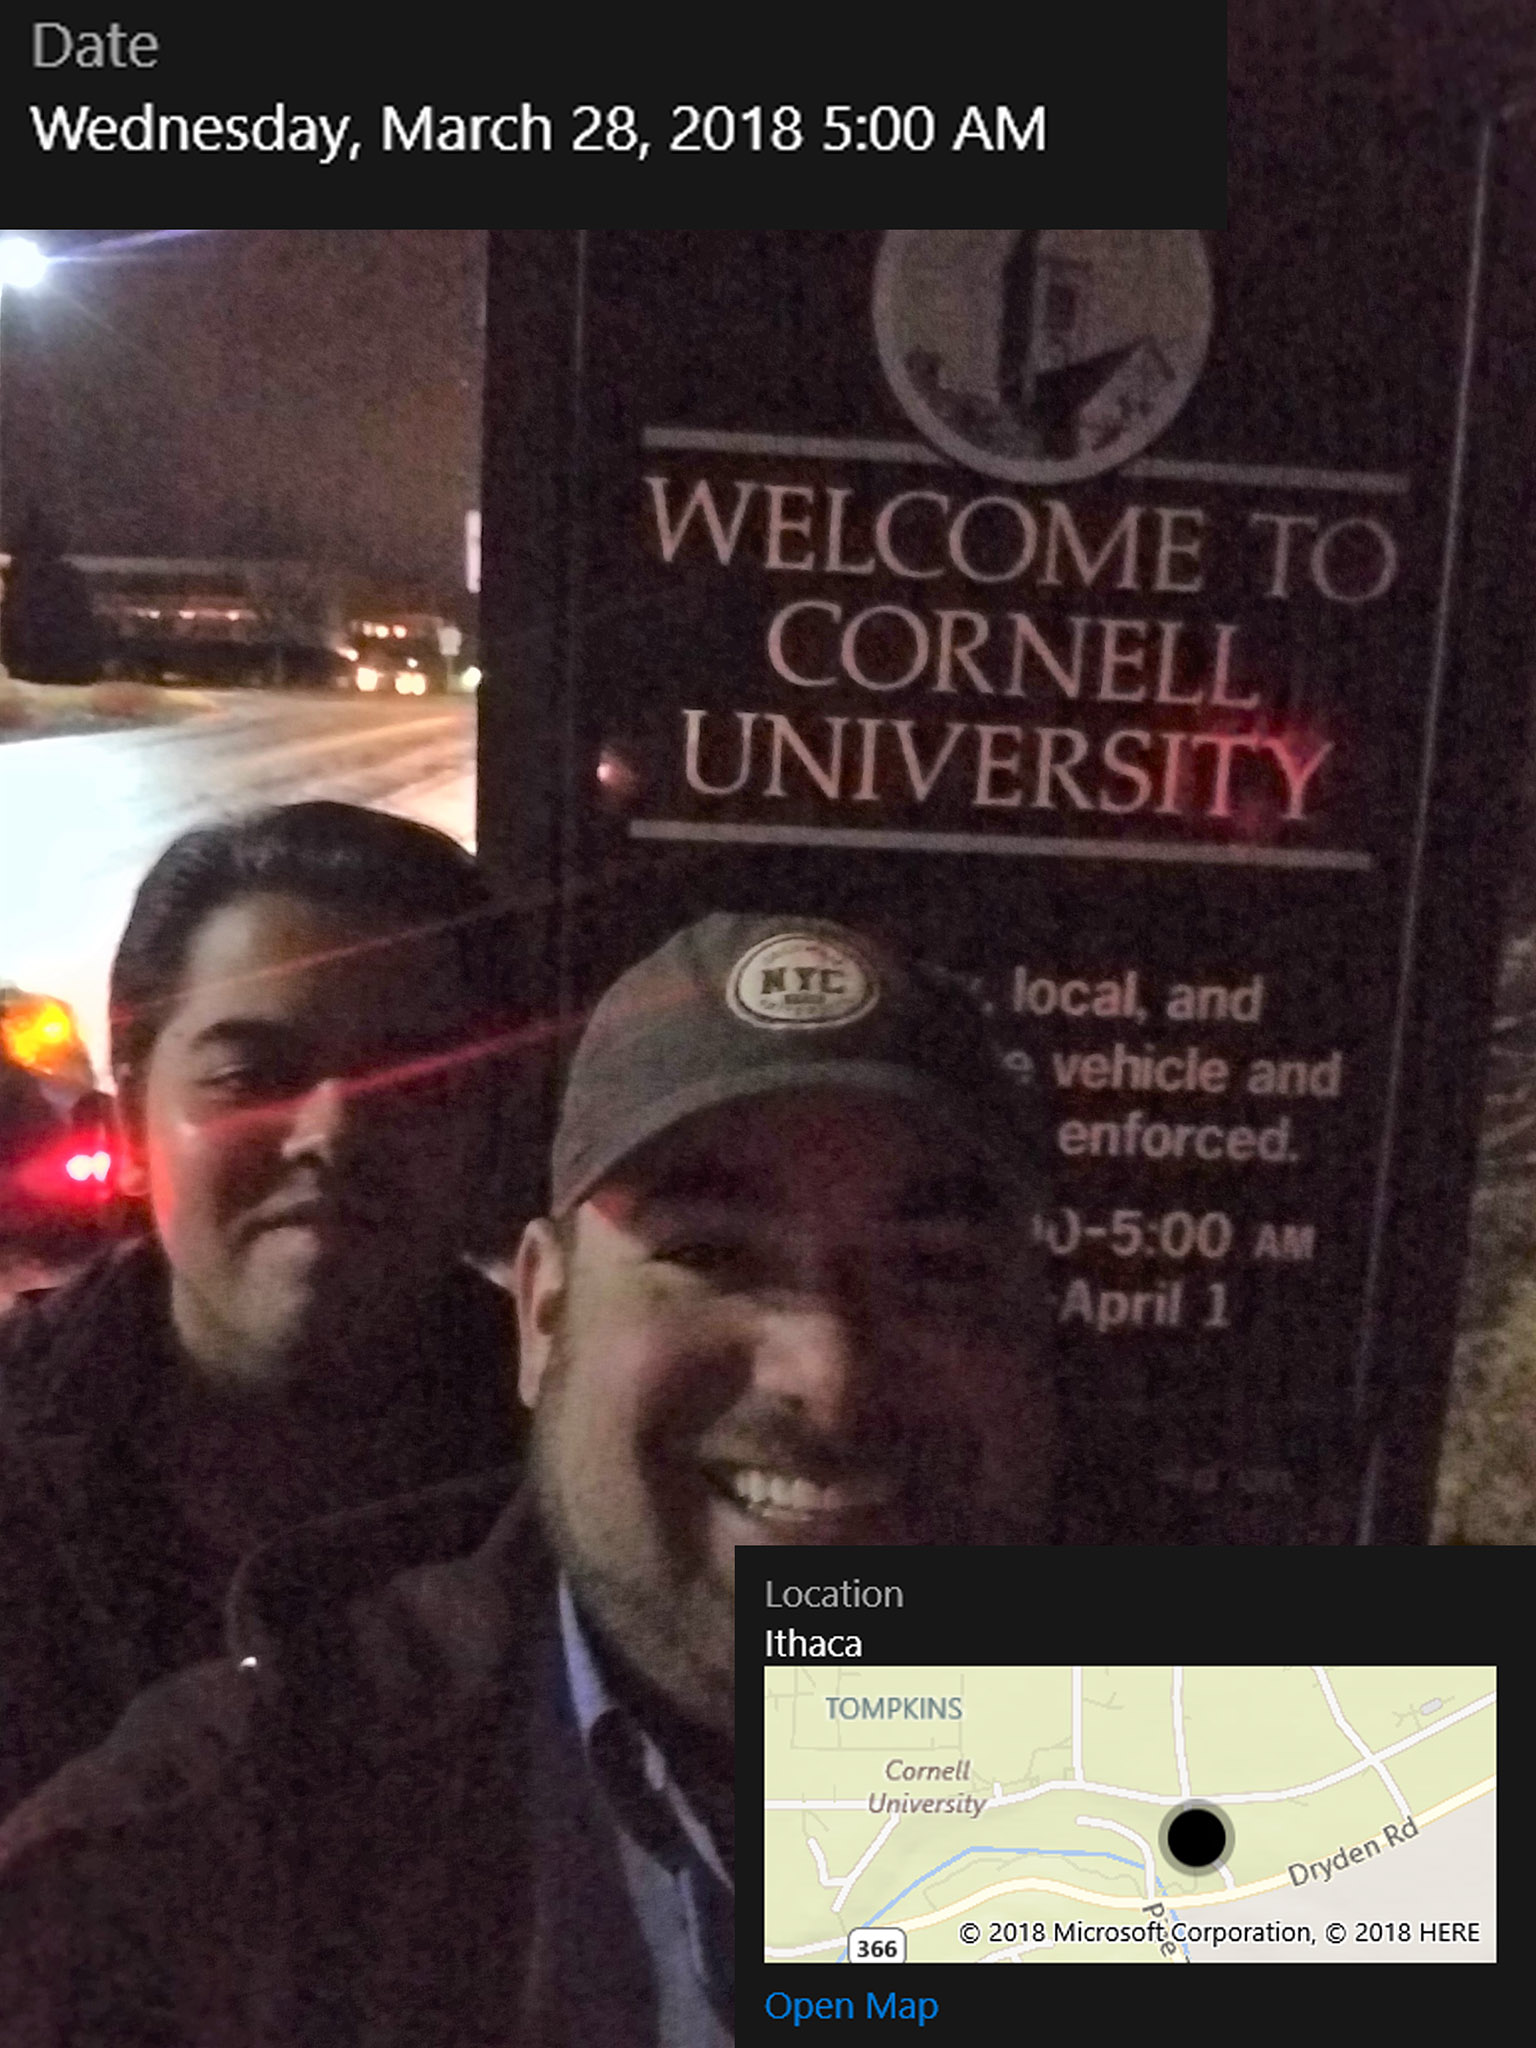 It's still dark out and Ben and Mohak have a lot of driving to do, so they won't be seeing much of Cornell's campus.